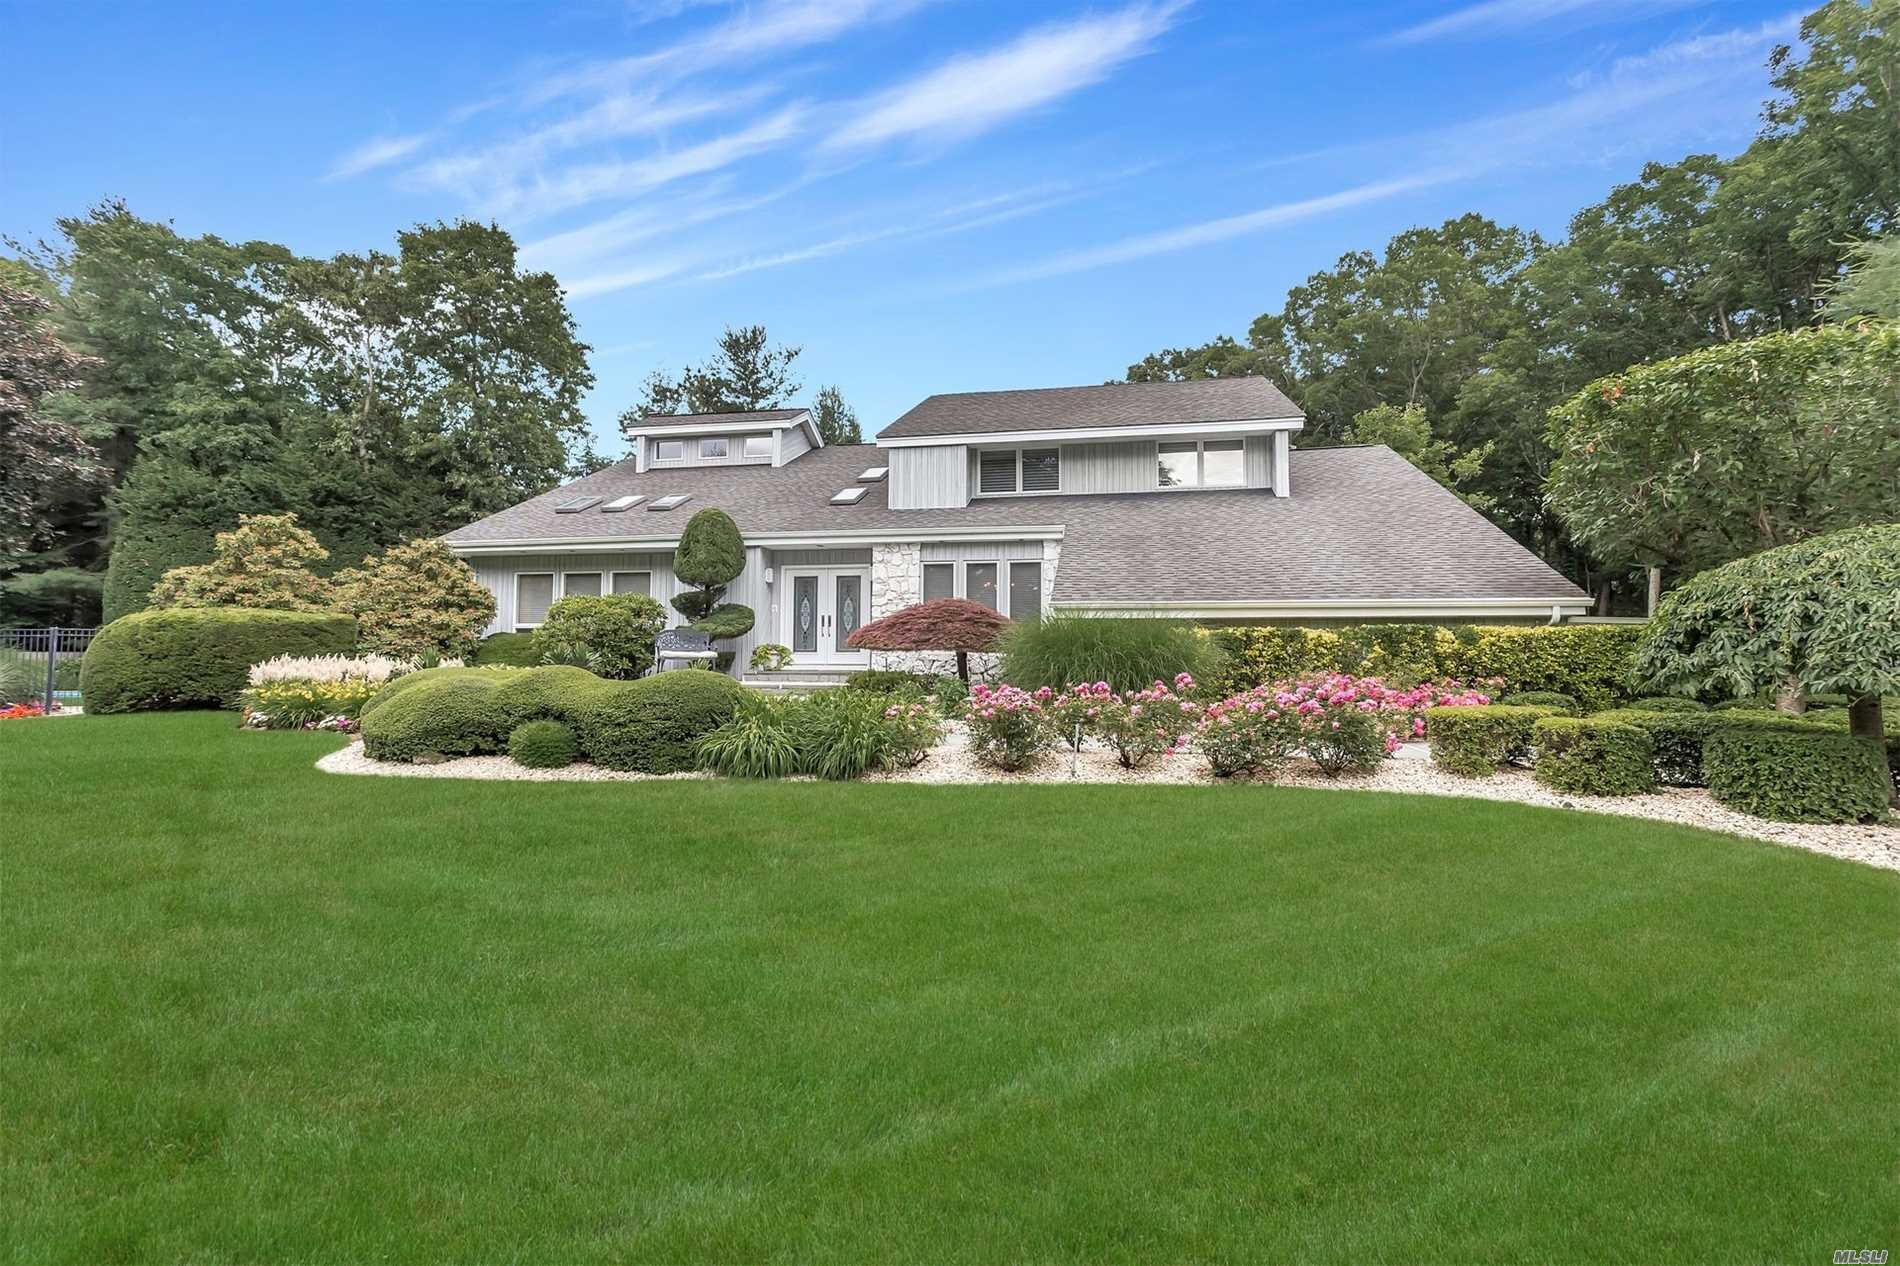 5 Caterina Ct - Dix Hills, New York